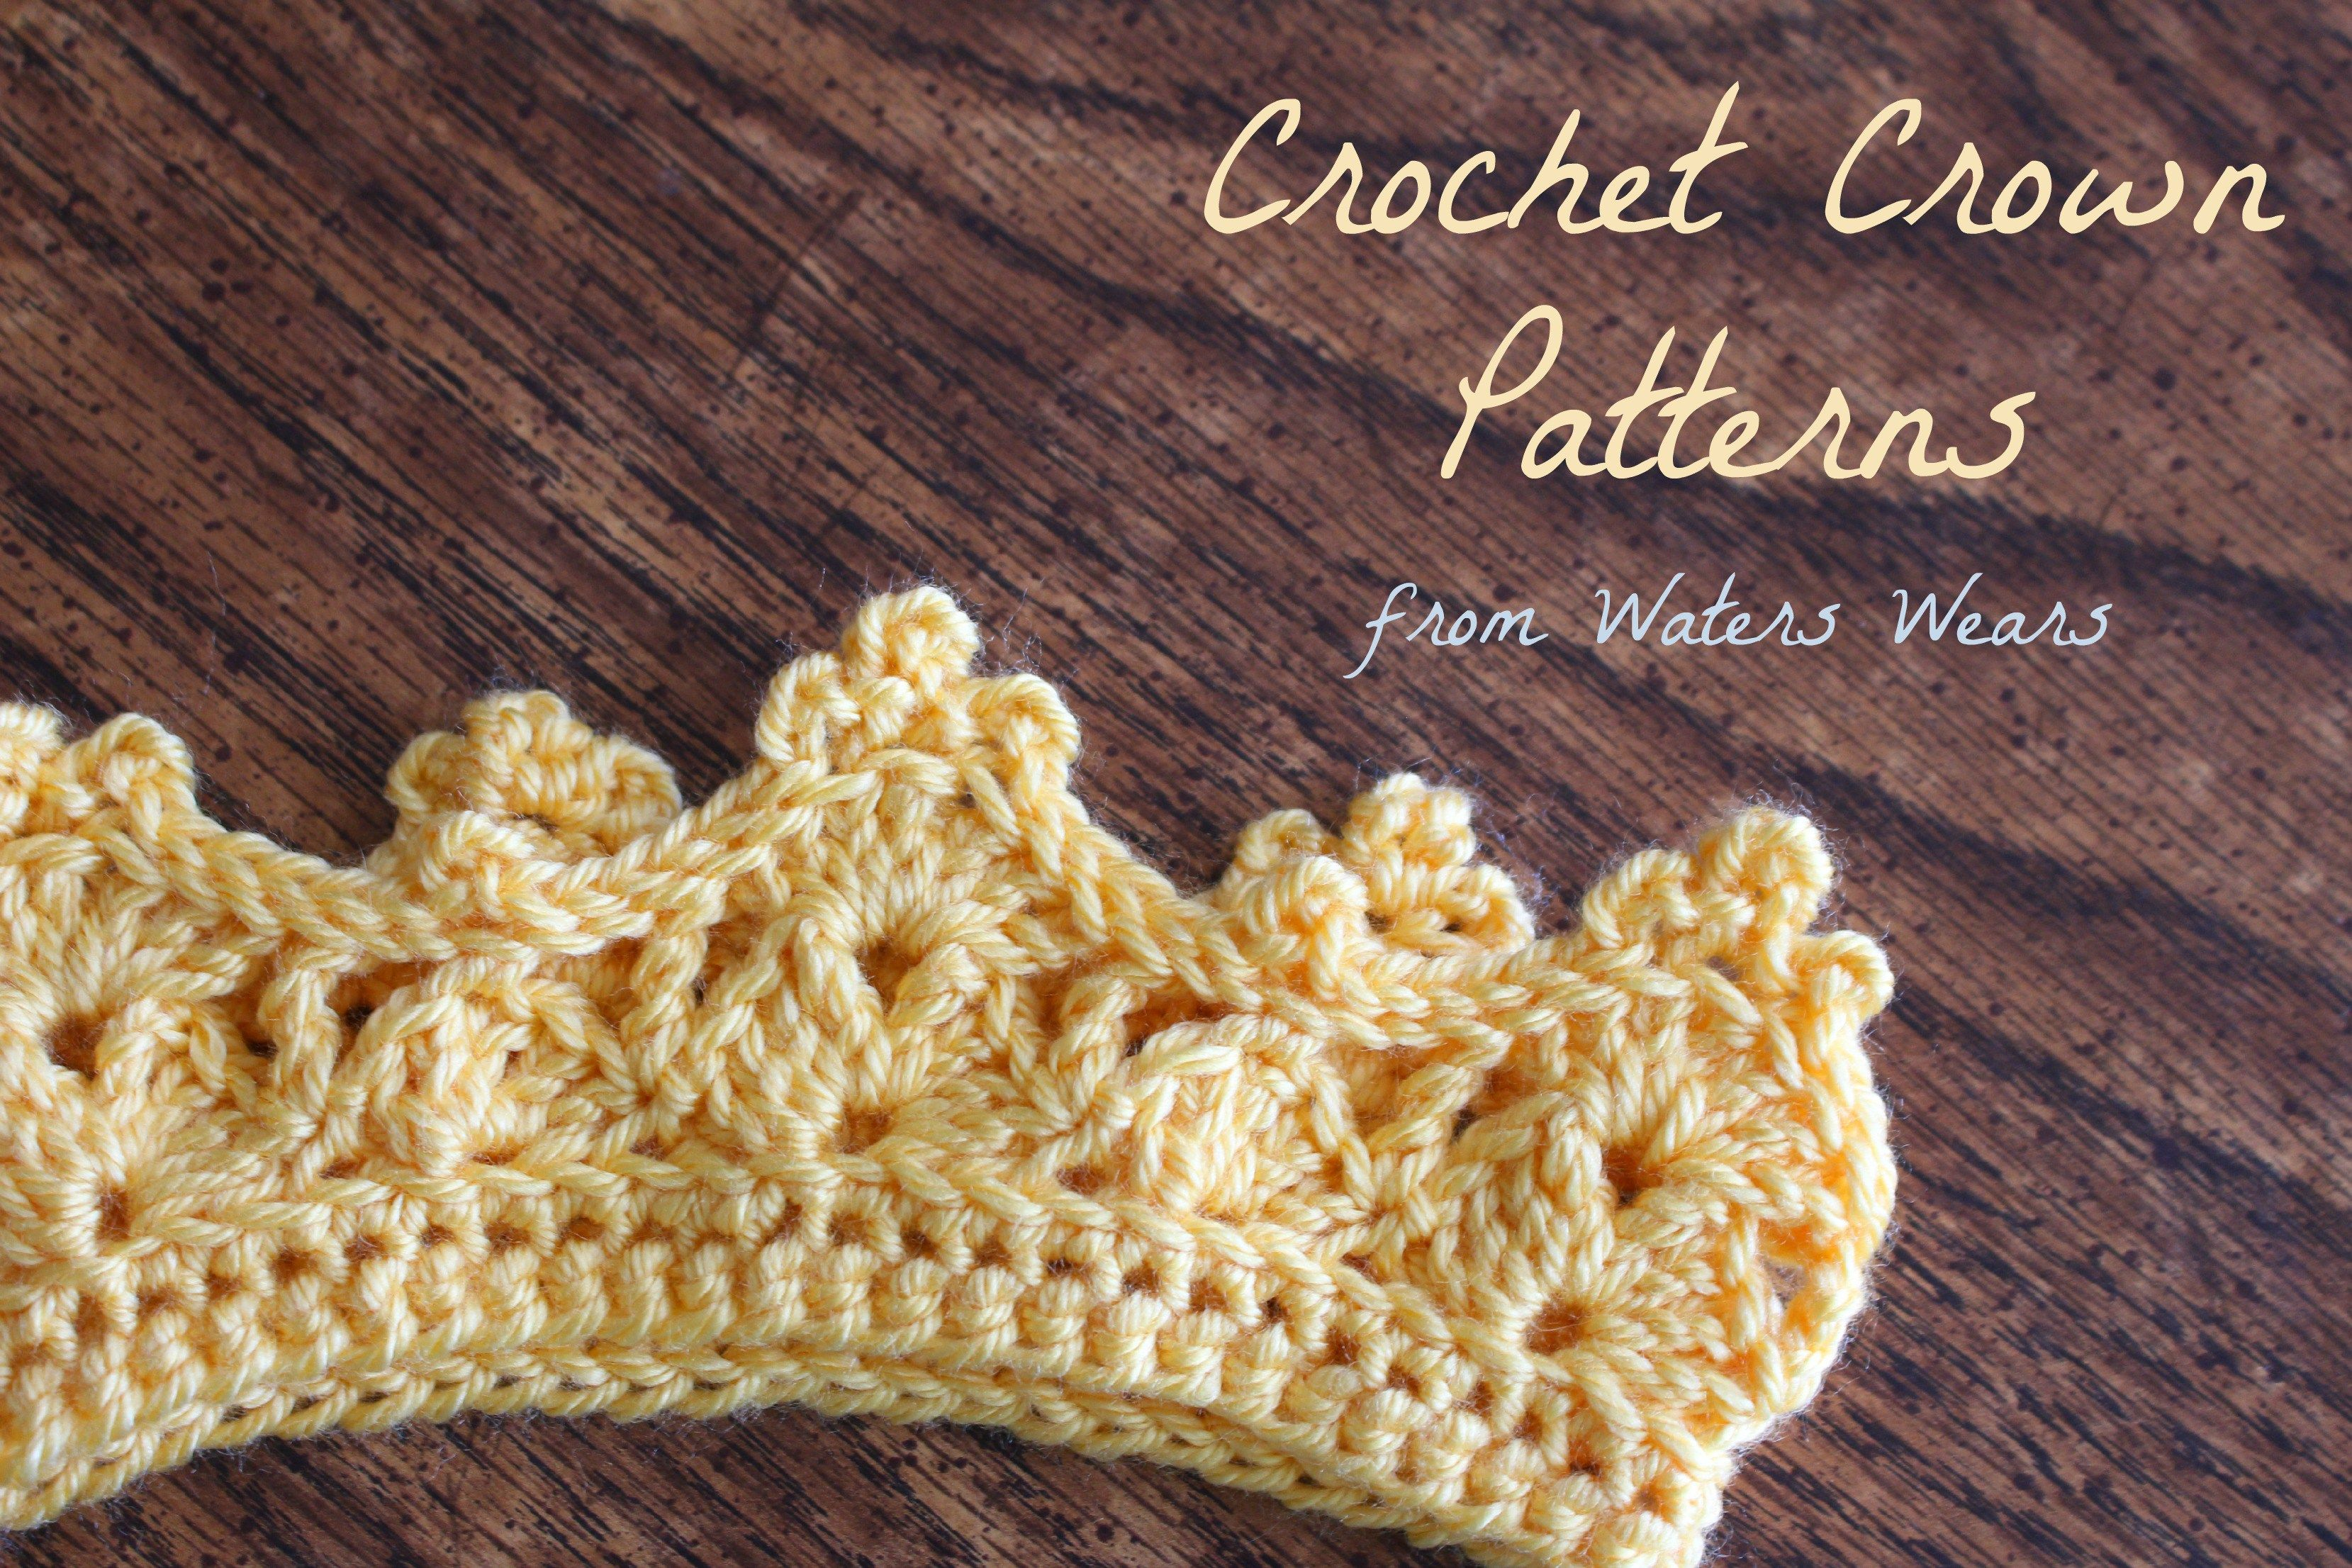 Crochet Crowns, Two Free Patterns | Waters Wears | Crochet ...